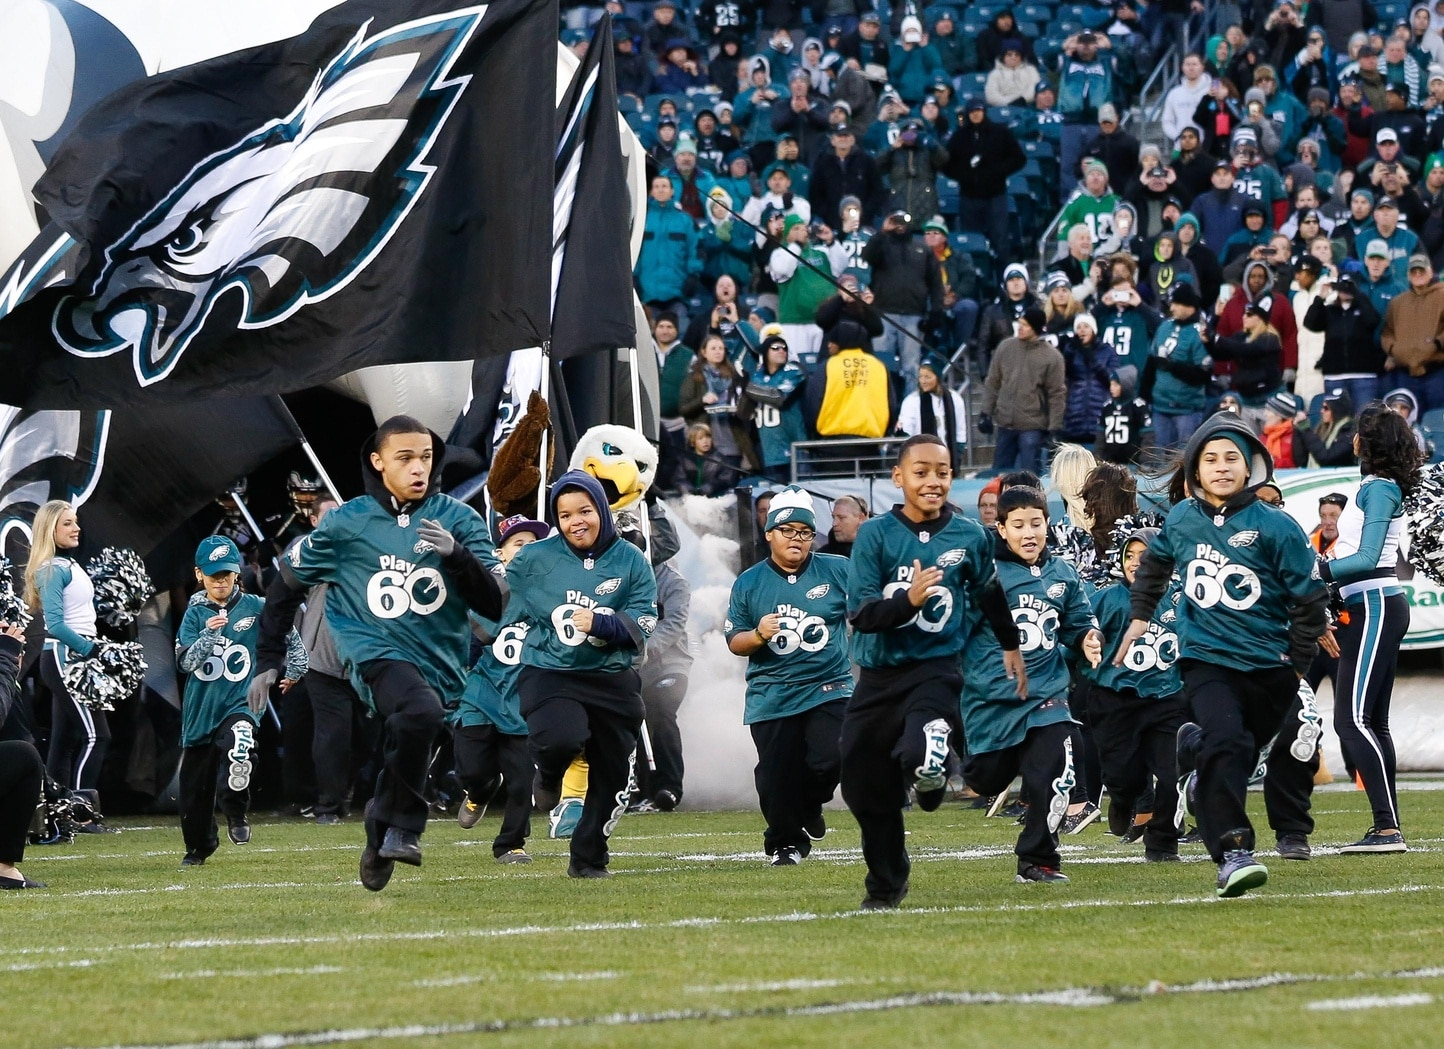 Dec 7, 2014; Philadelphia, PA, USA; Young fans lead the Philadelphia Eagles out of the tunnel to begin a game against the Seattle Seahawks at Lincoln Financial Field. The Seahawks defeated the Eagles 24-14. Mandatory Credit: Bill Streicher-USA TODAY Sports